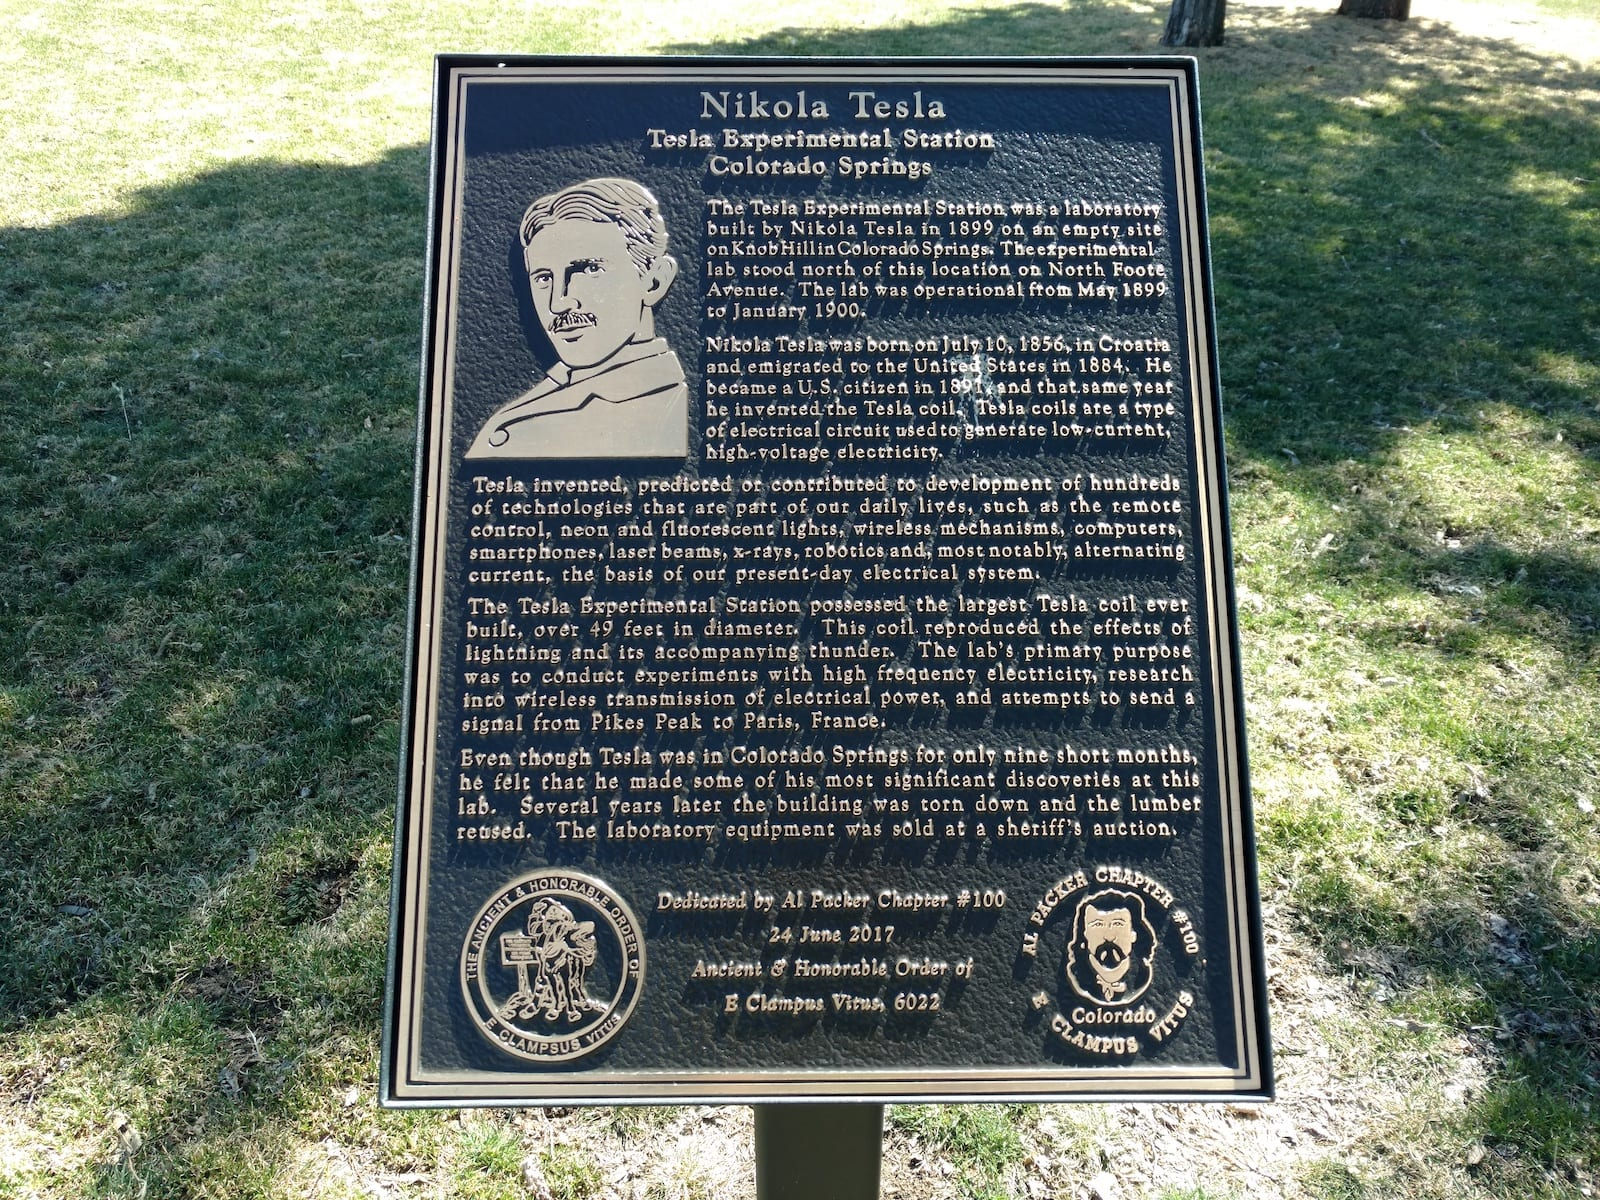 Nikola Tesla Interpretive Sign Memorial Park Colorado Springs